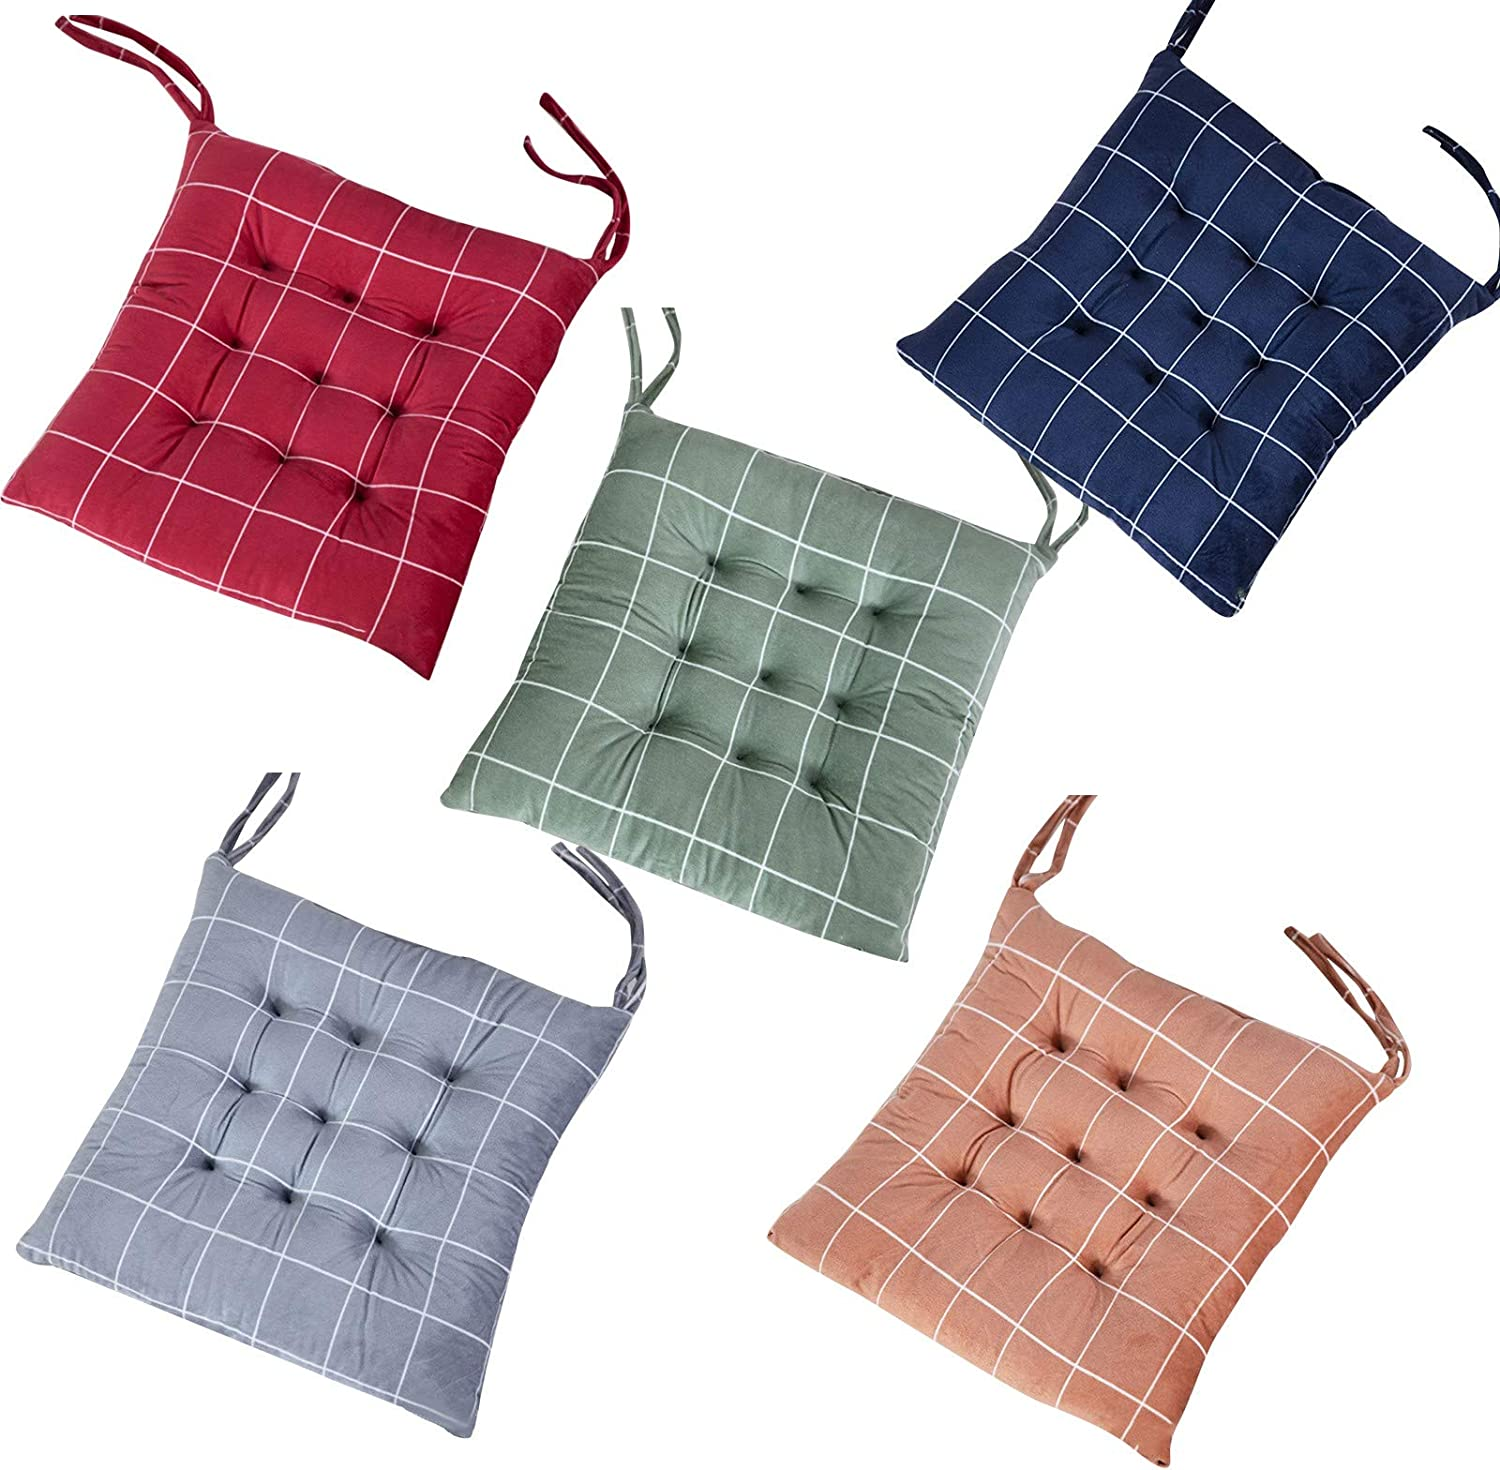 Square Selling and Don't miss the campaign selling Seat Cushion with Ties Pad Patio Chairs Replacement